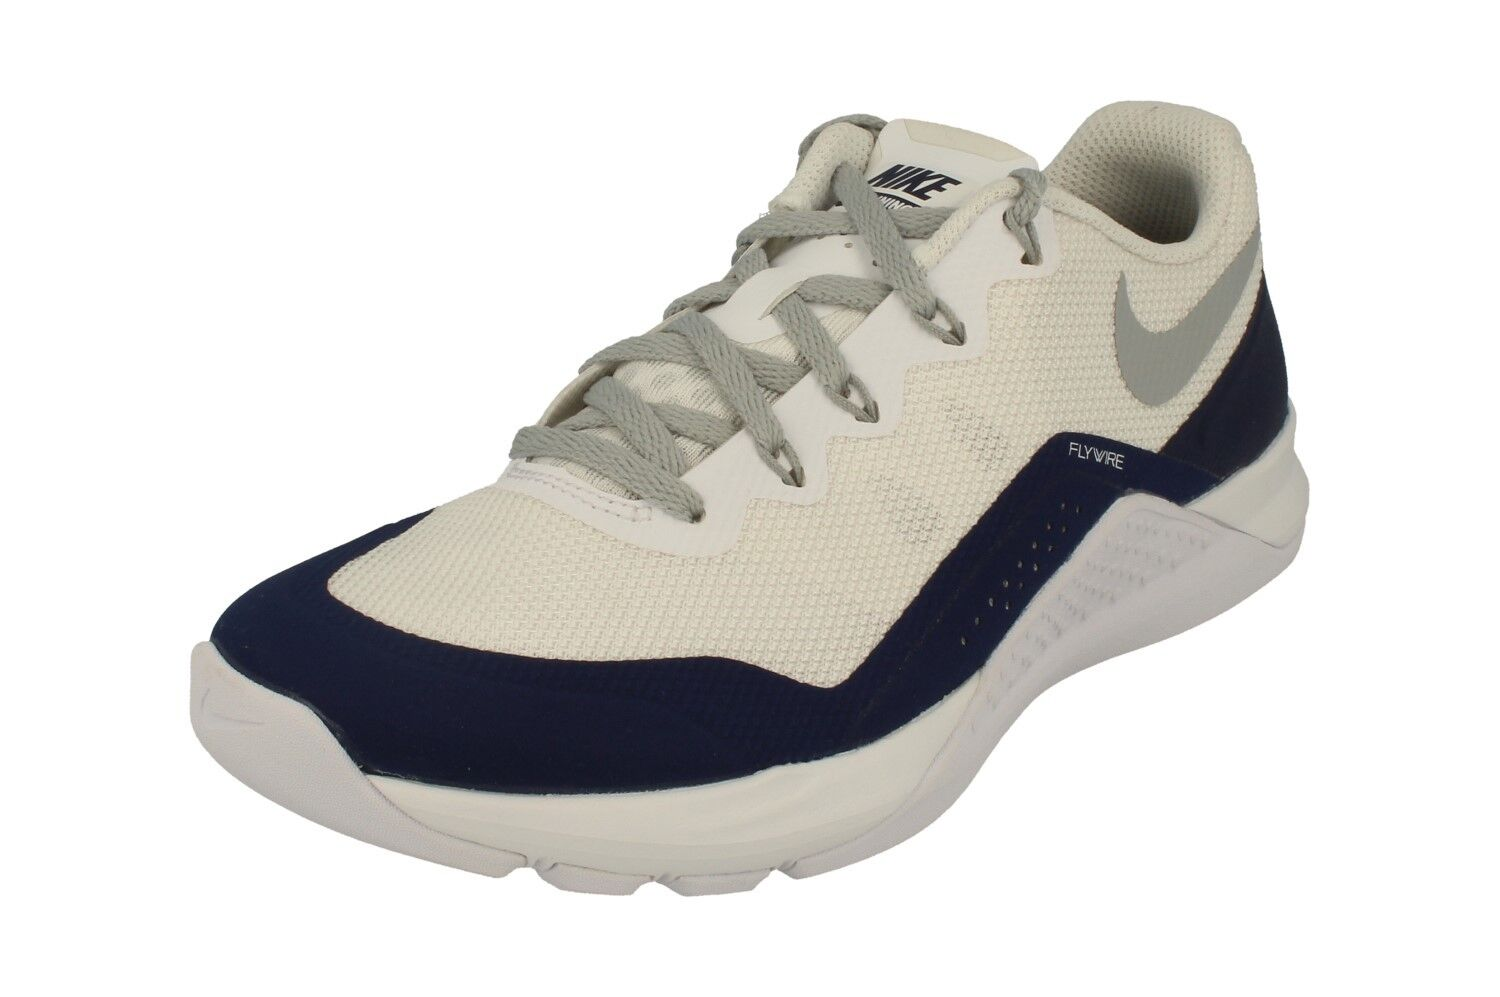 Nike Wo Hommes Metcon Repper Dsx Chaussures Running Trainers 902173 Baskets Chaussures Dsx 102 d31f91